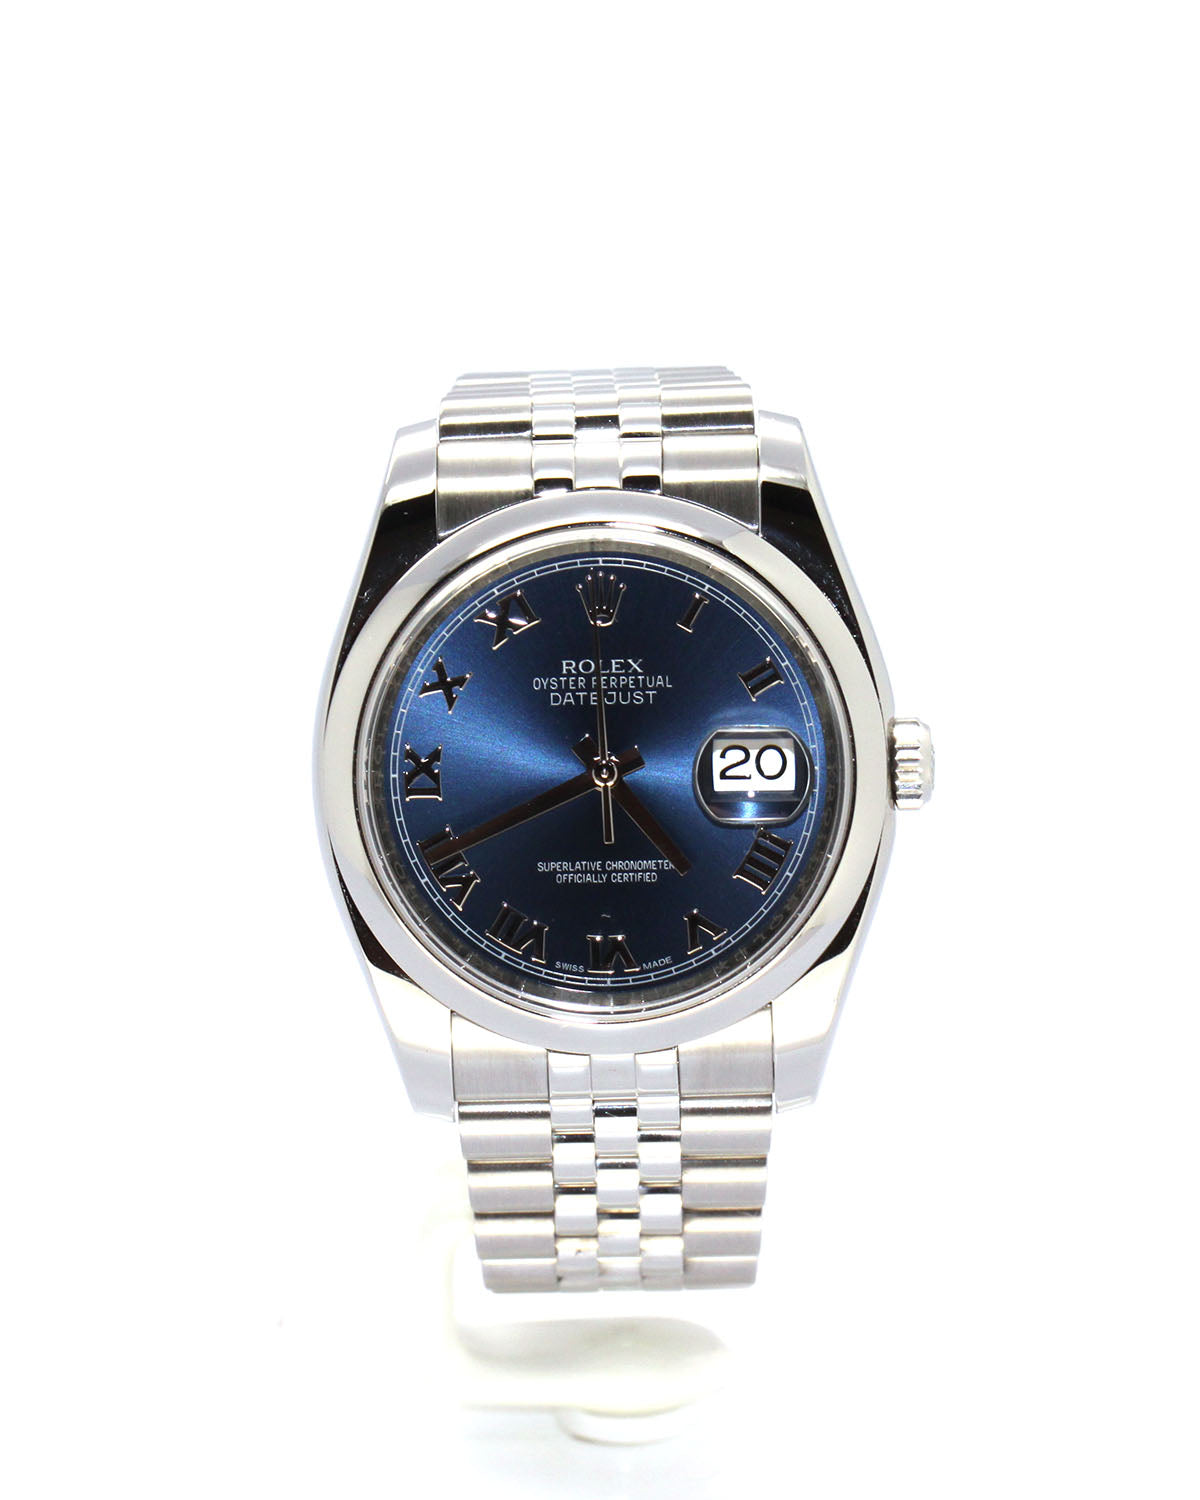 ROLEX OYSTER PERPETUAL DATEJUST 116200 JUBILEE